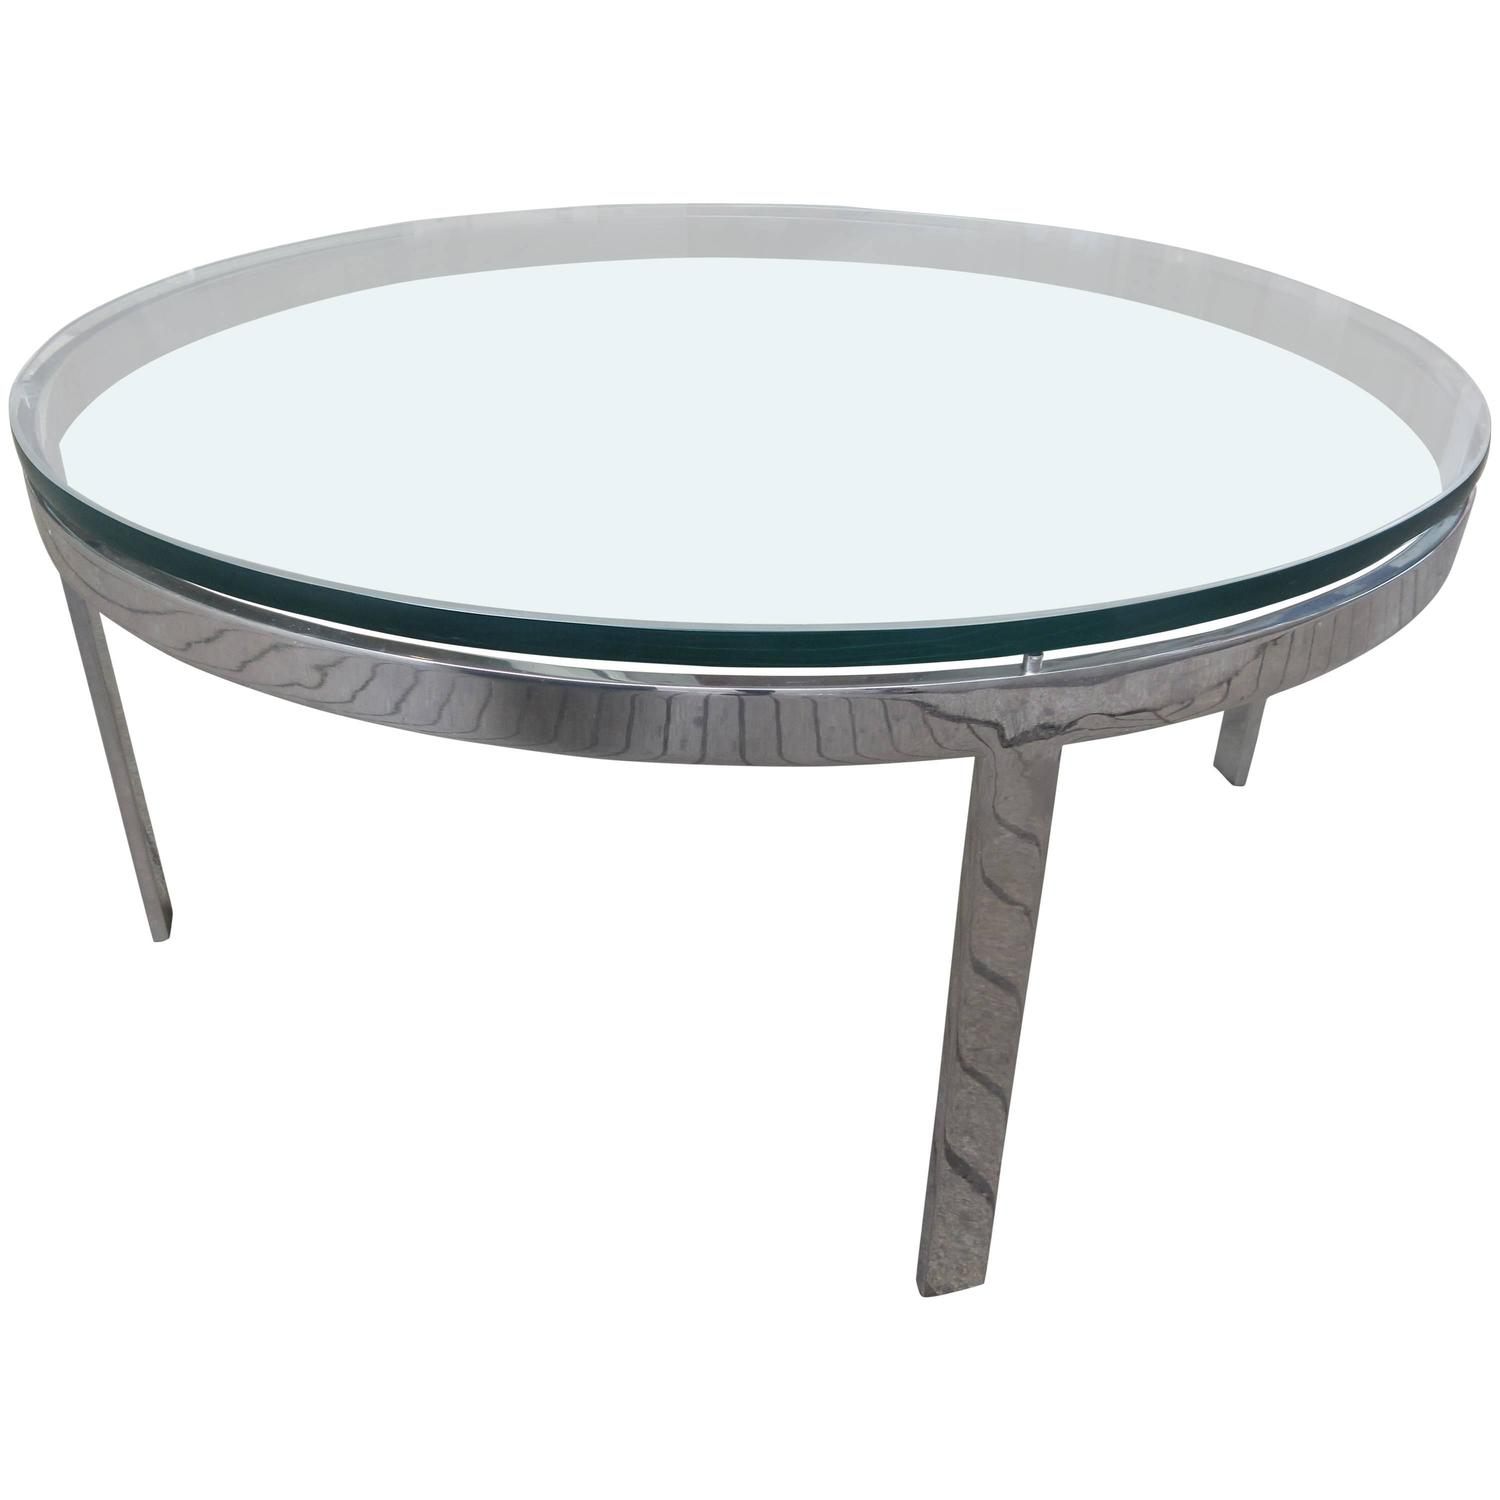 1970s Glass And Chrome Round Coffee Table At 1stdibs